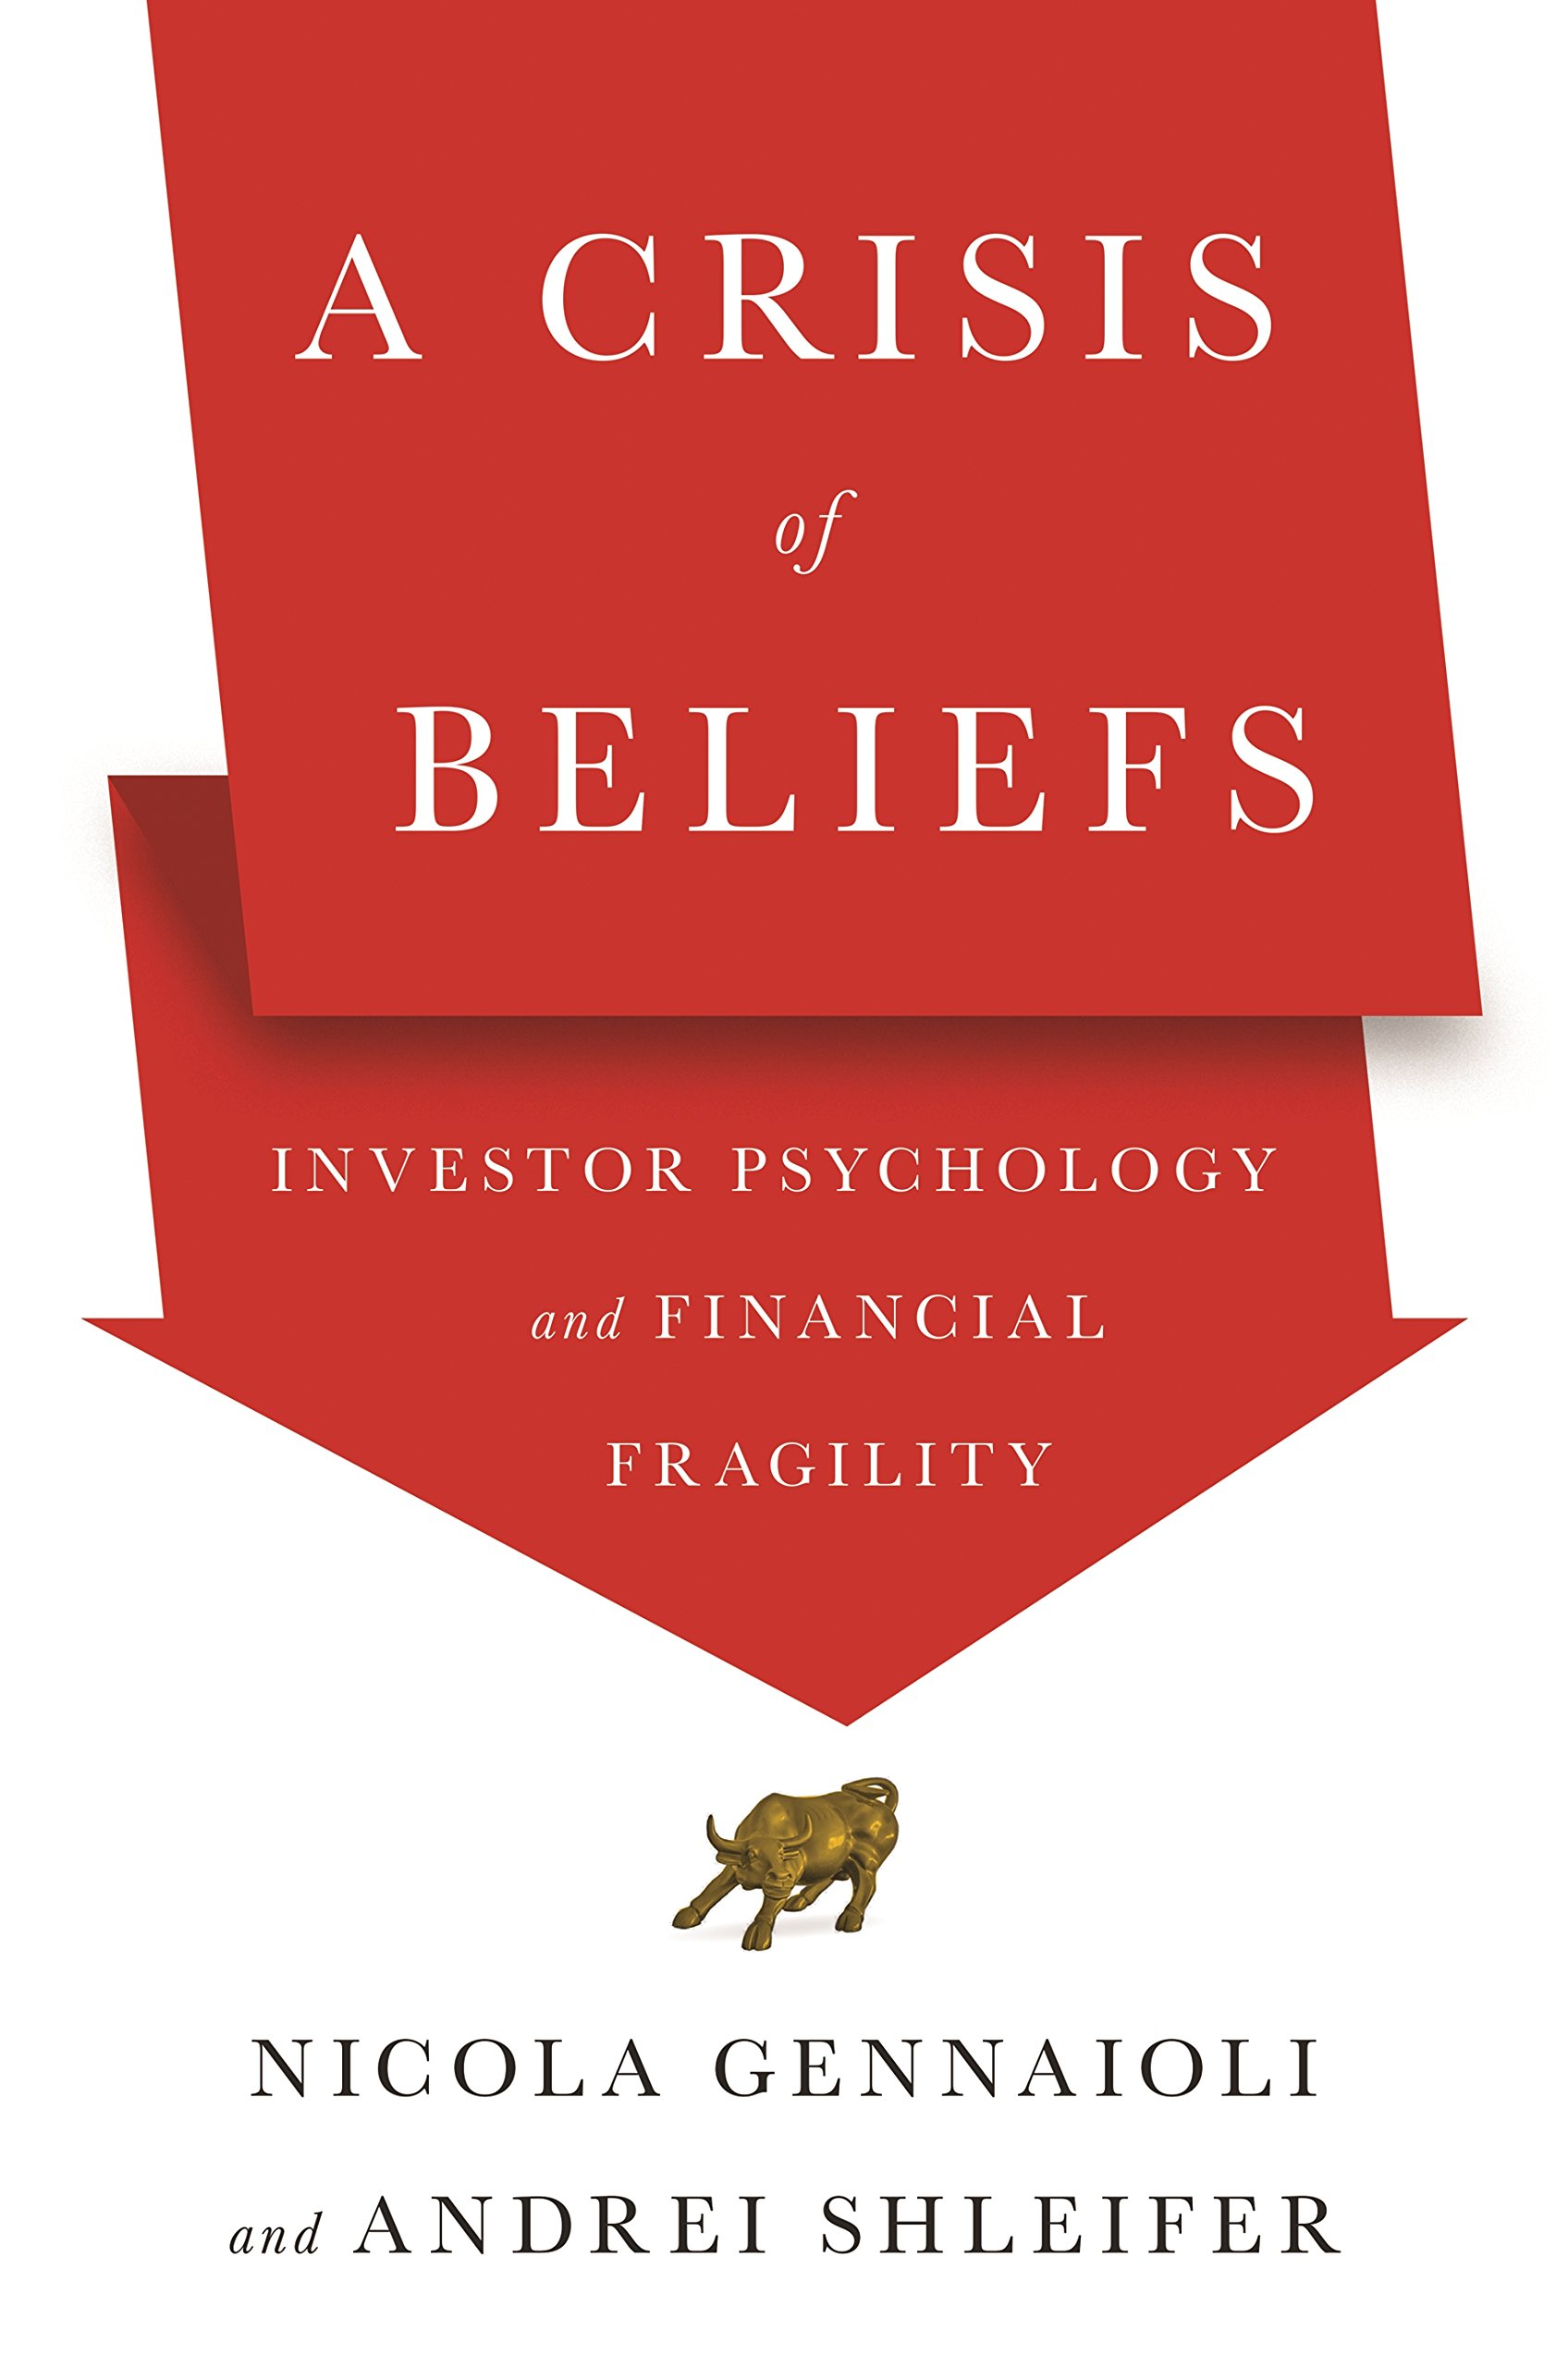 A Crisis of Beliefs: Investor Psychology and